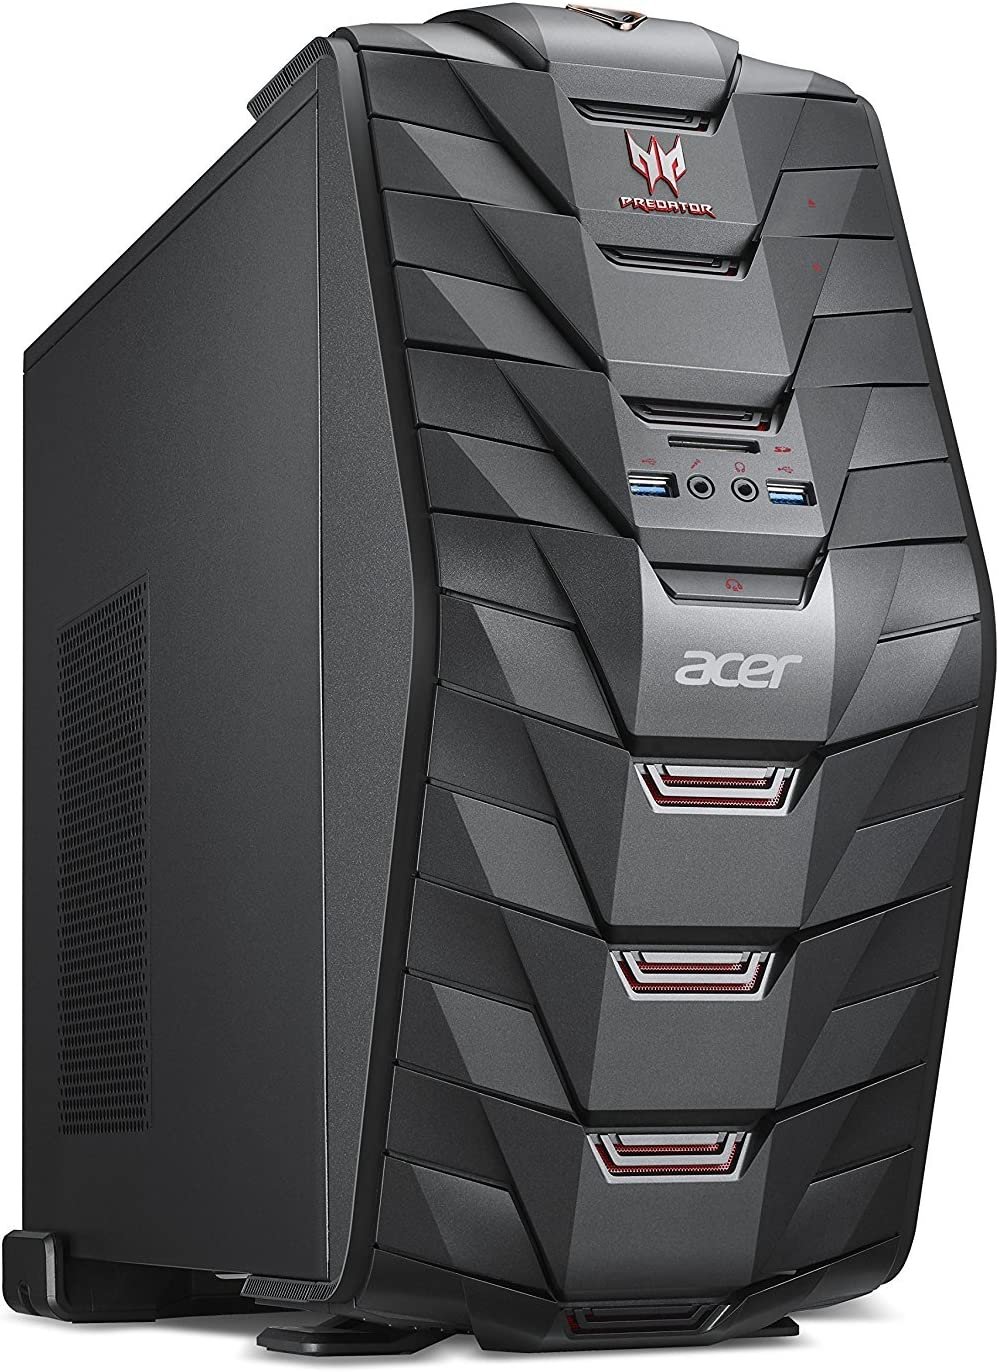 NEW Acer Predator G3 High Performance Gaming Tower Desktop, Intel Core i7-7700 8M Cache, up to 4.2GHz , 32GB DDR4, 1TB HDD, 256GB SSD, NVIDIA GeForce GTX 1070, HDMI, USB 3.0, Bluetooth 4.0, Win 10